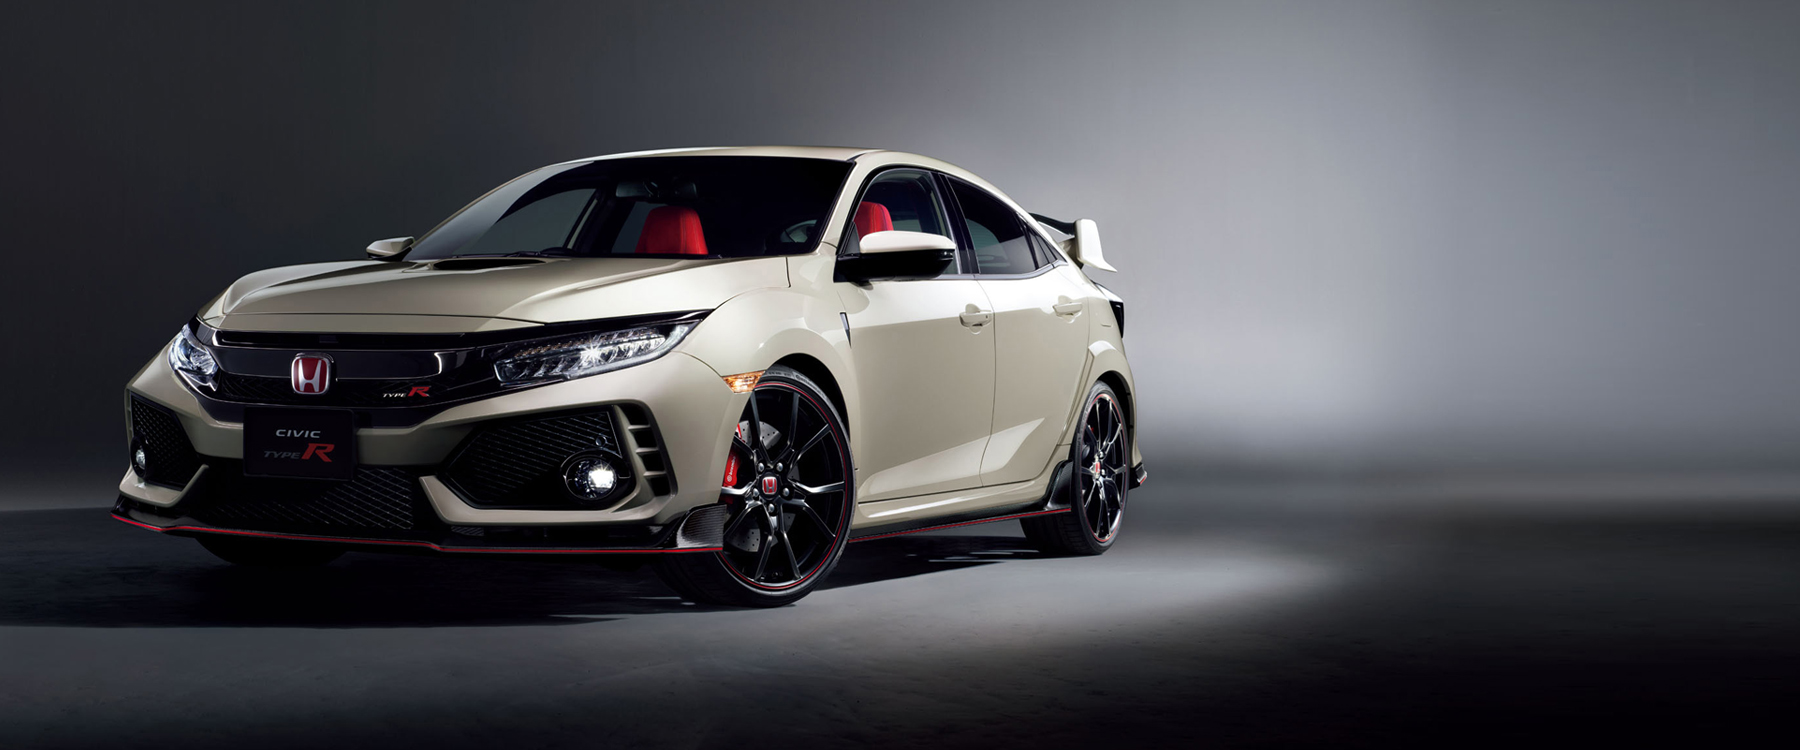 The Honda Civic Type R sets new front wheel drive lap record at Nürburgring.